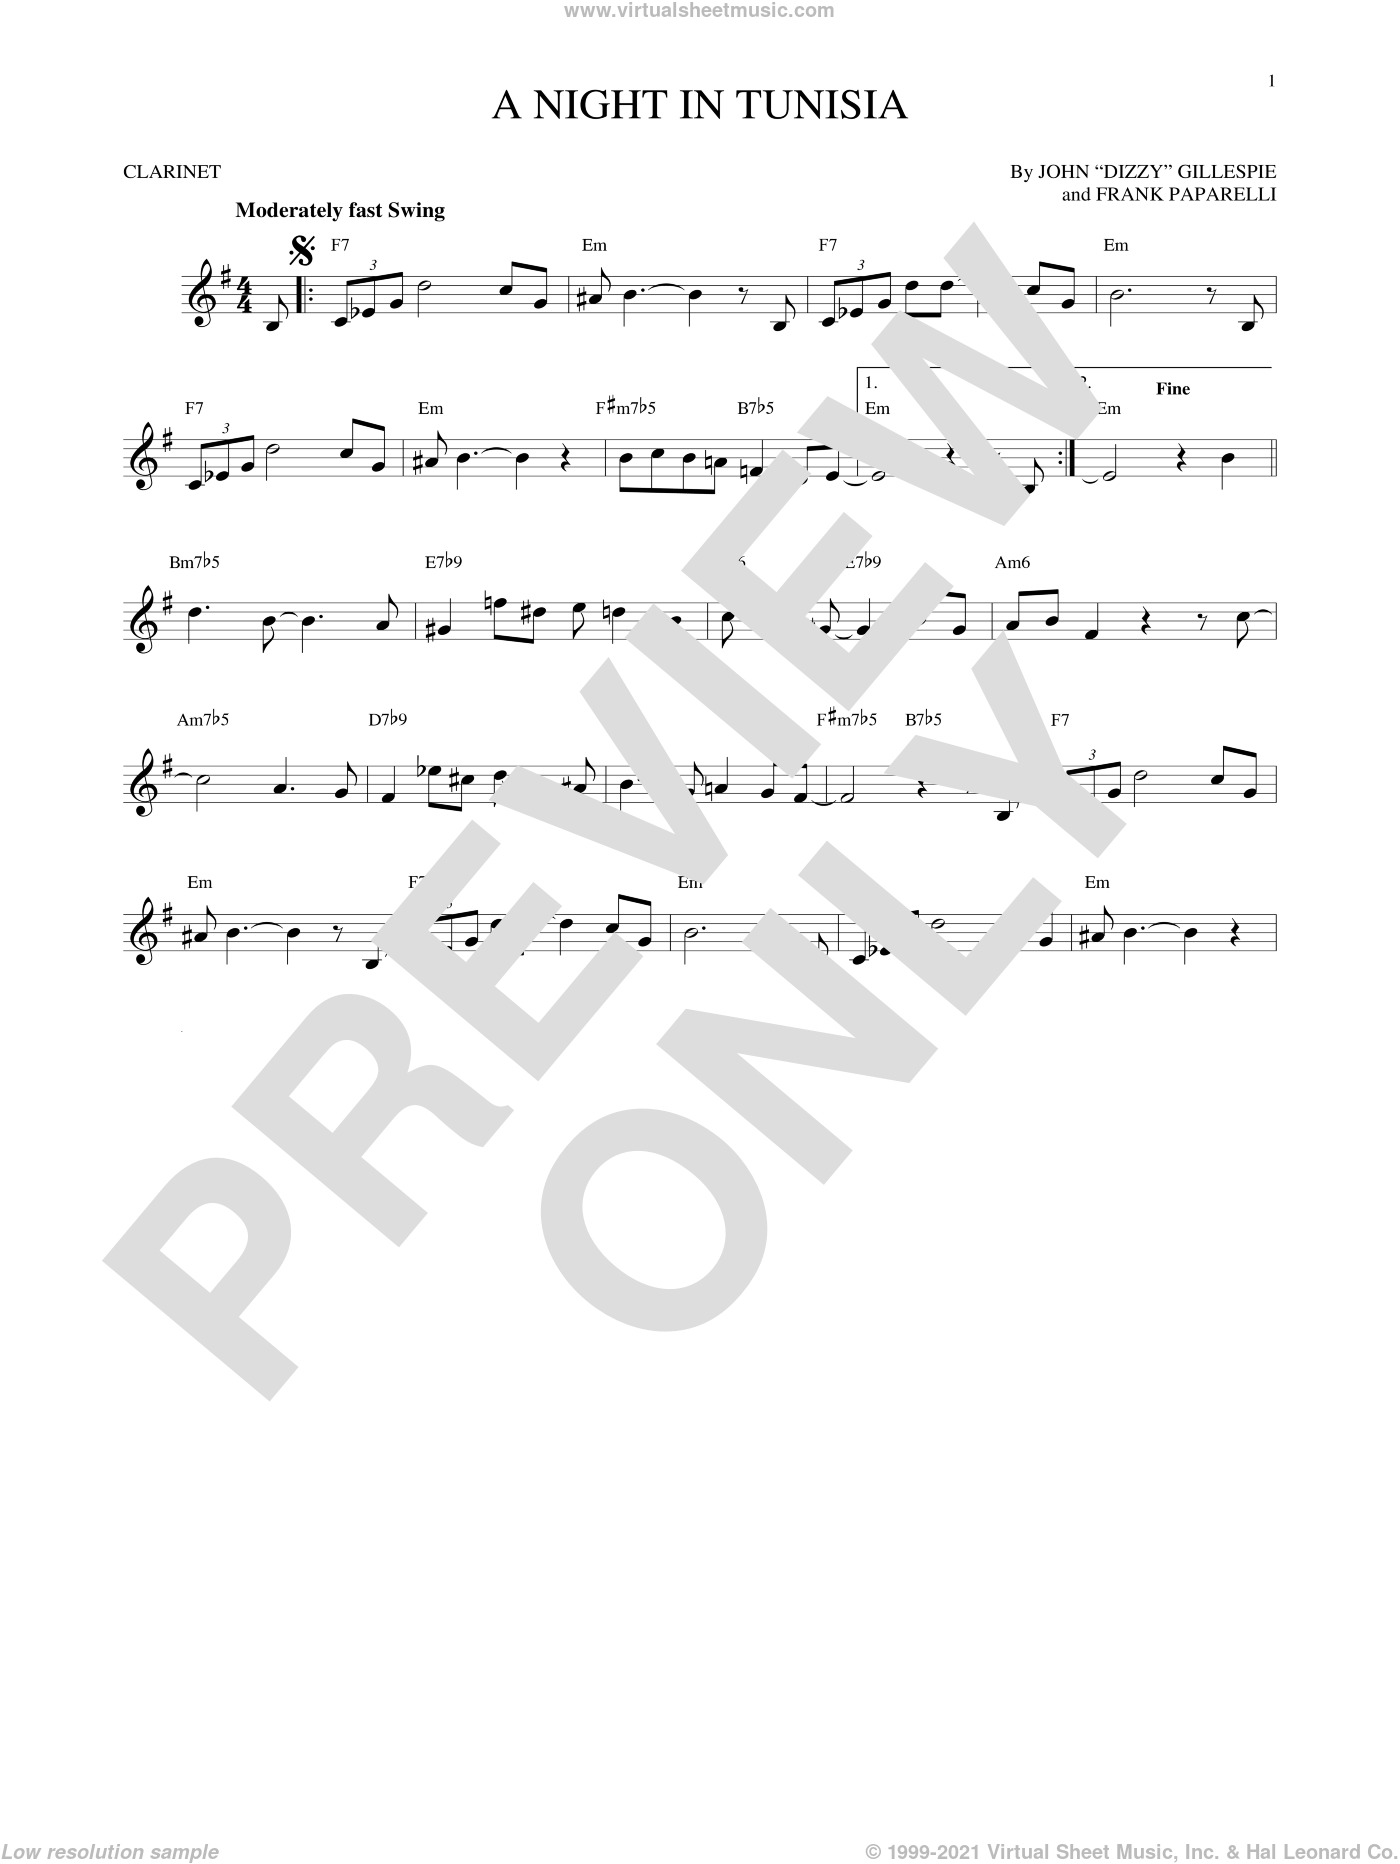 A Night In Tunisia sheet music for clarinet solo by Frank Paparelli and Dizzy Gillespie. Score Image Preview.